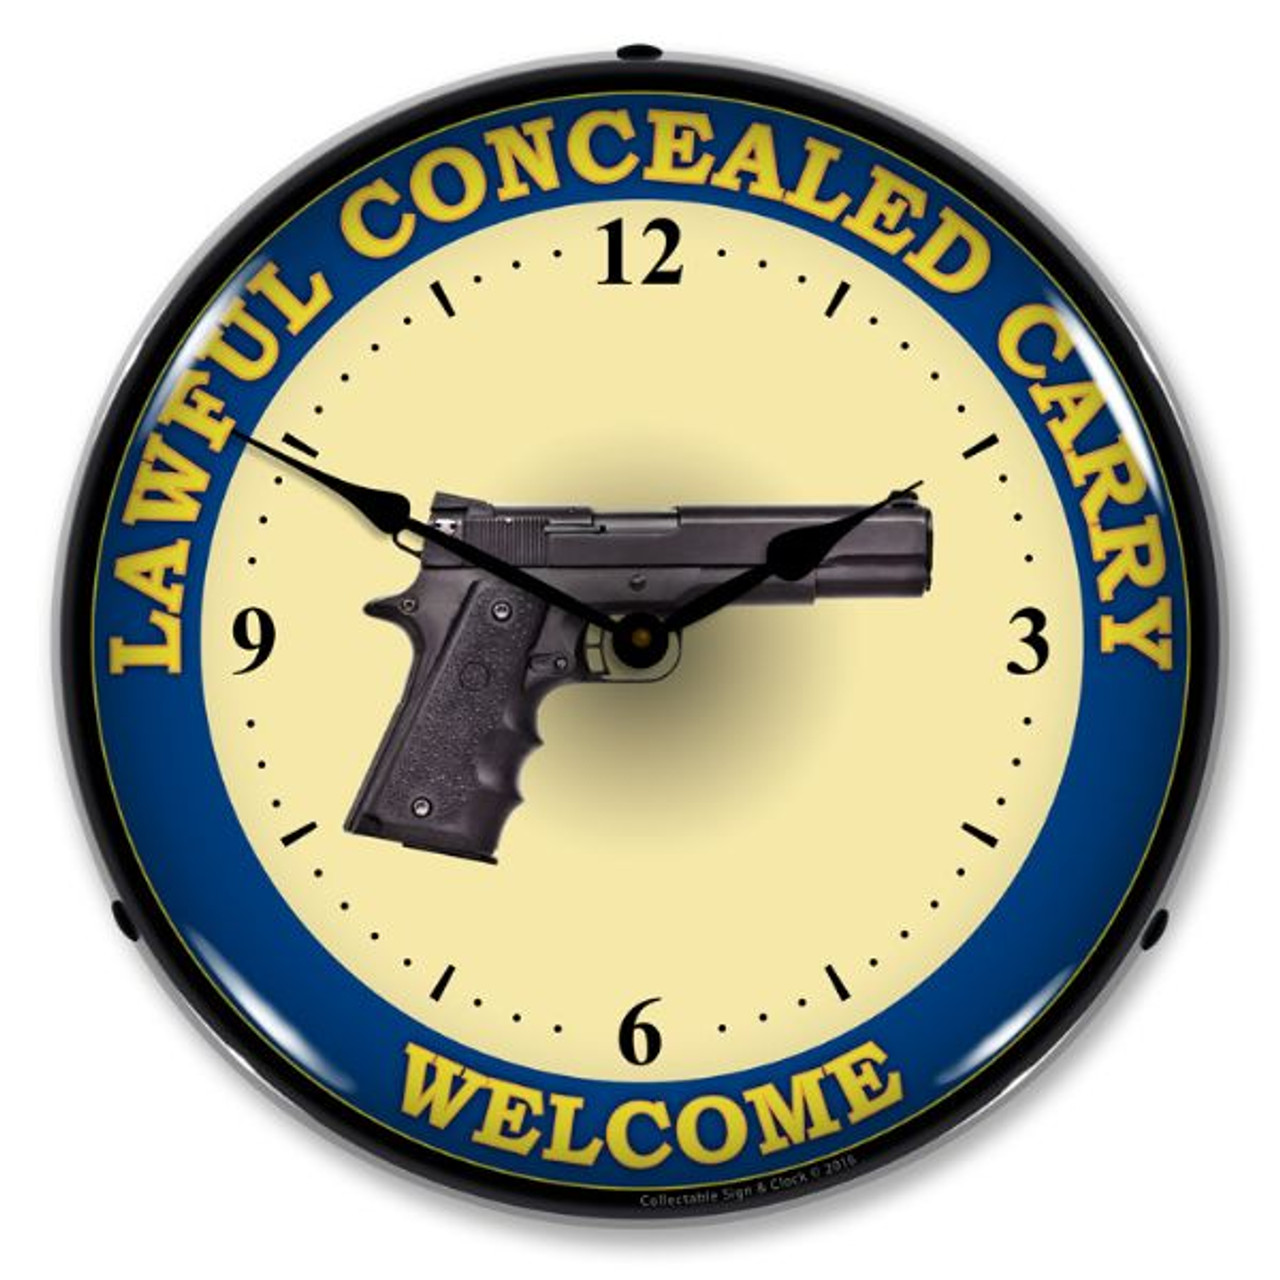 Lawful Concealed Carry Lighted Wall Clock 14 x 14 Inches